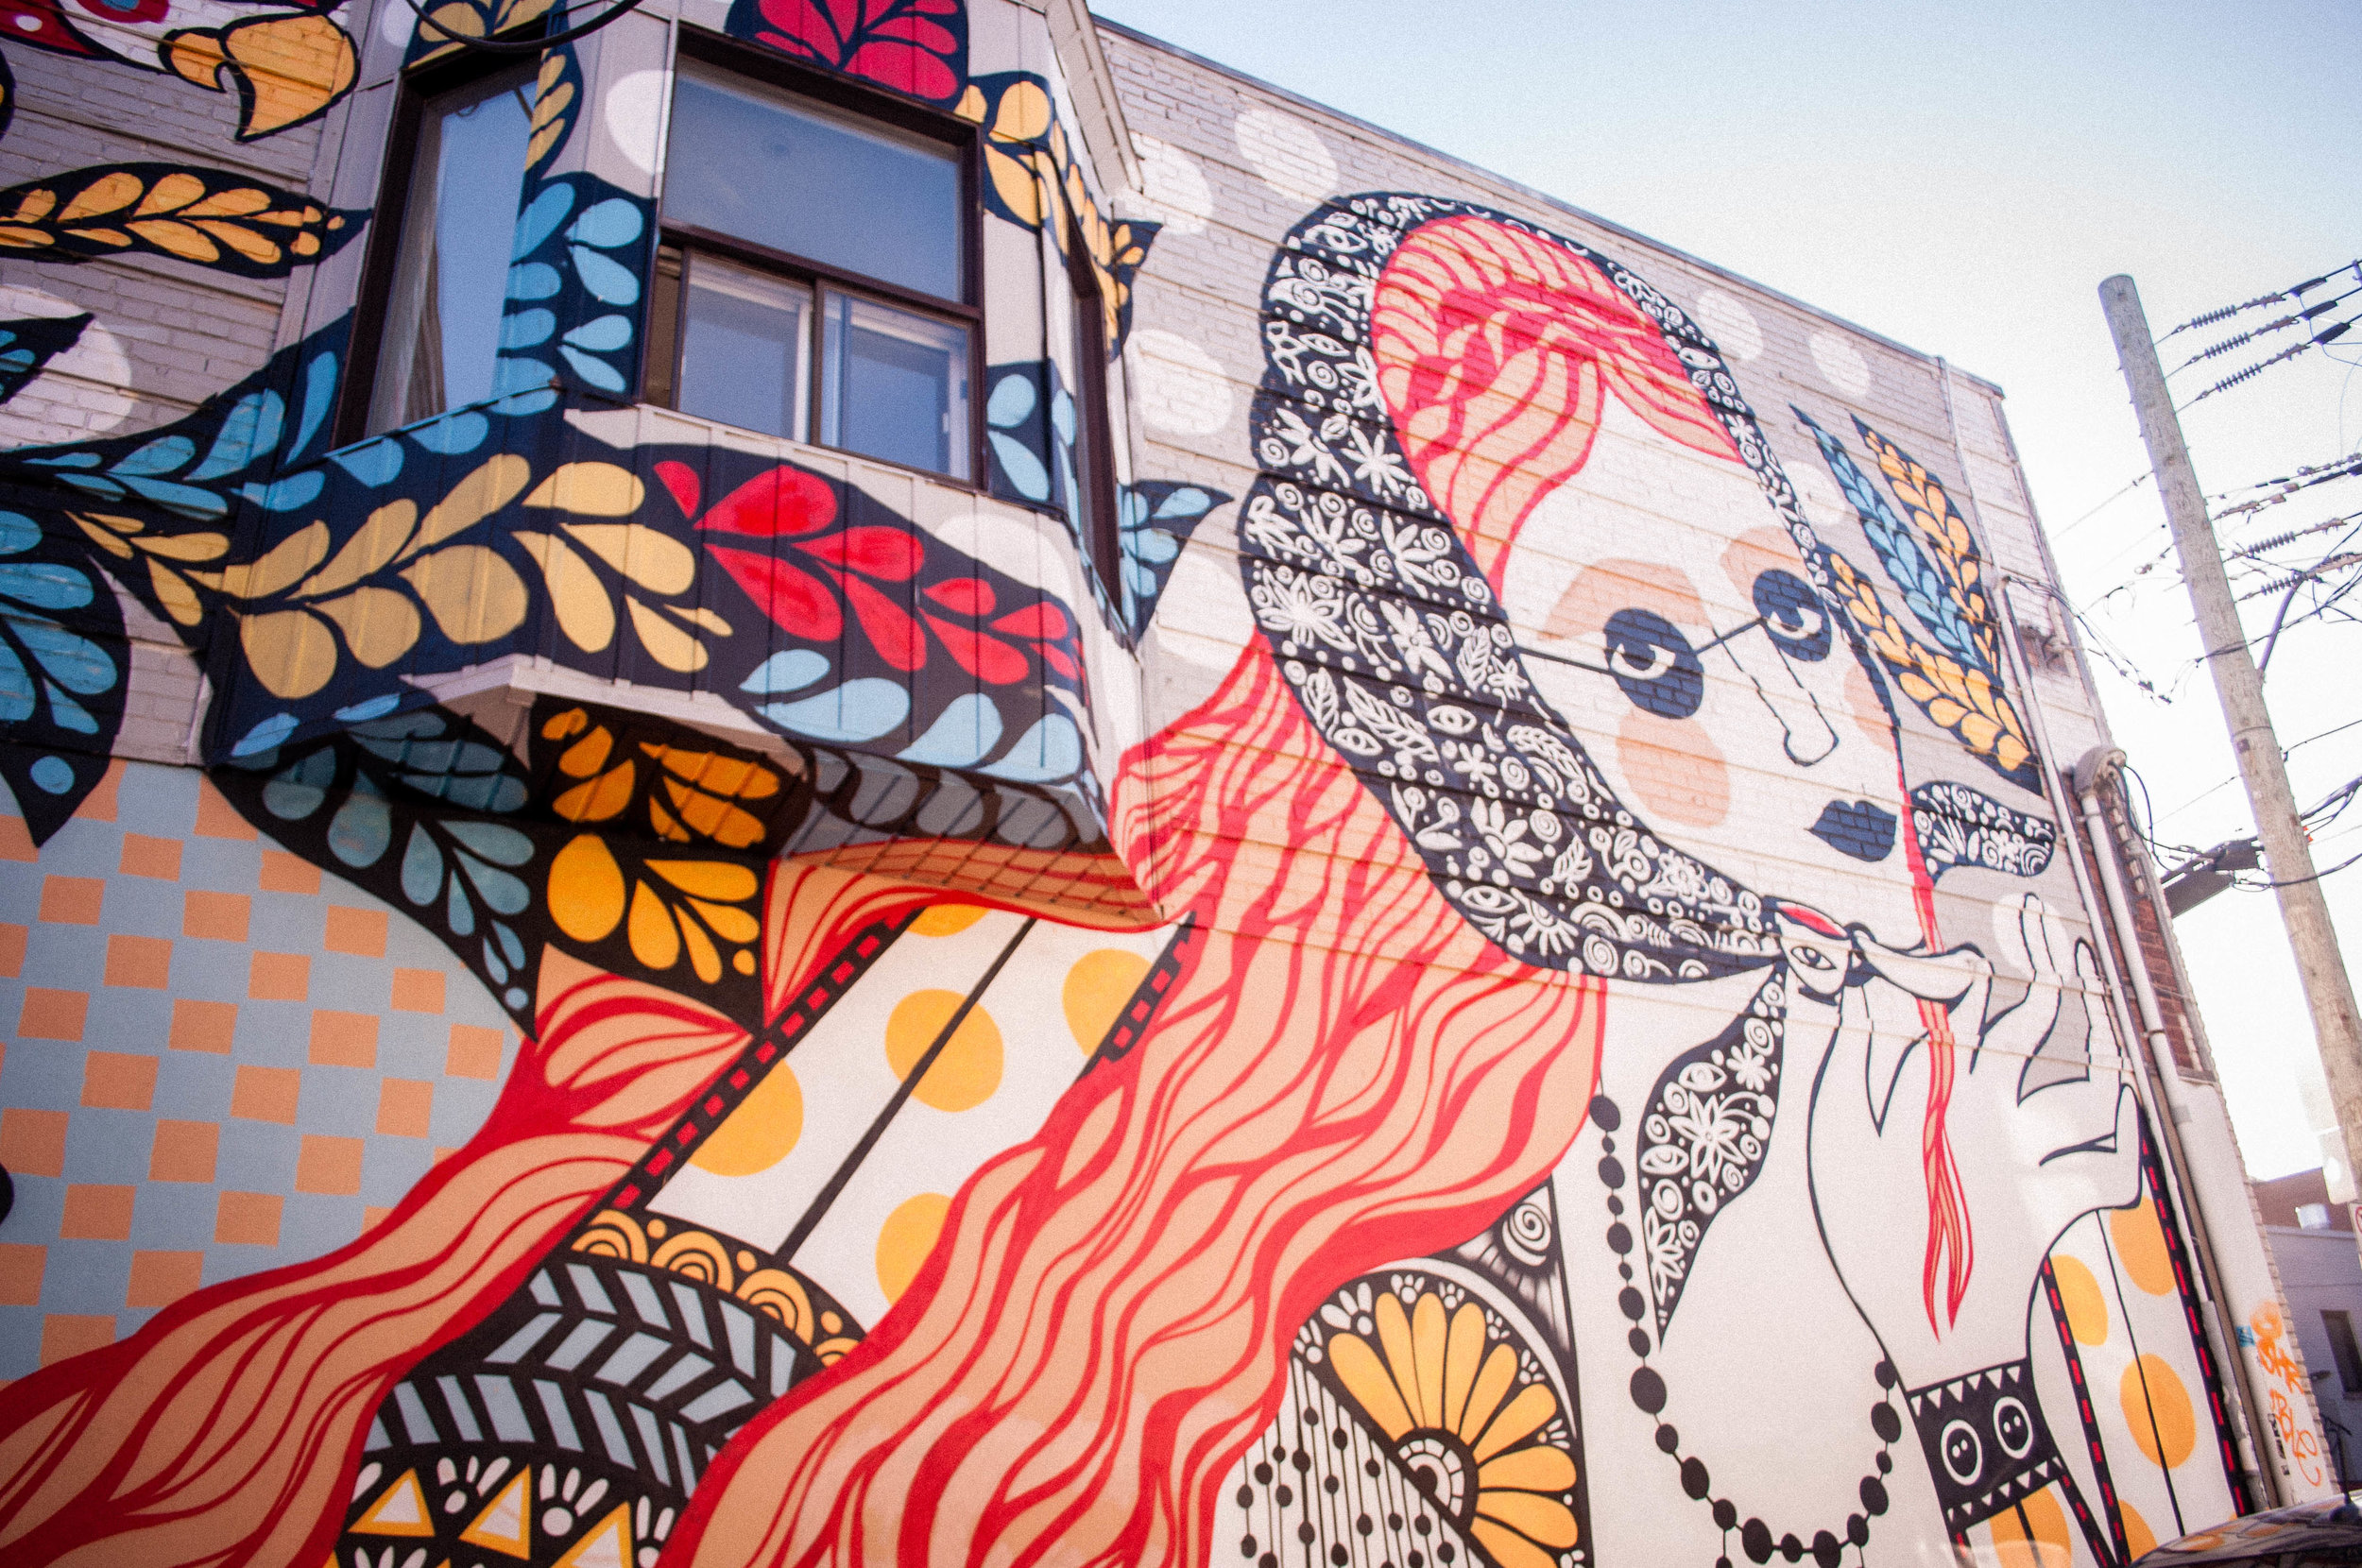 A graffiti on Saint-Viateur Street (Montreal) of Eastern European style with a women. Graffiti proposed as the best street art in Montreal